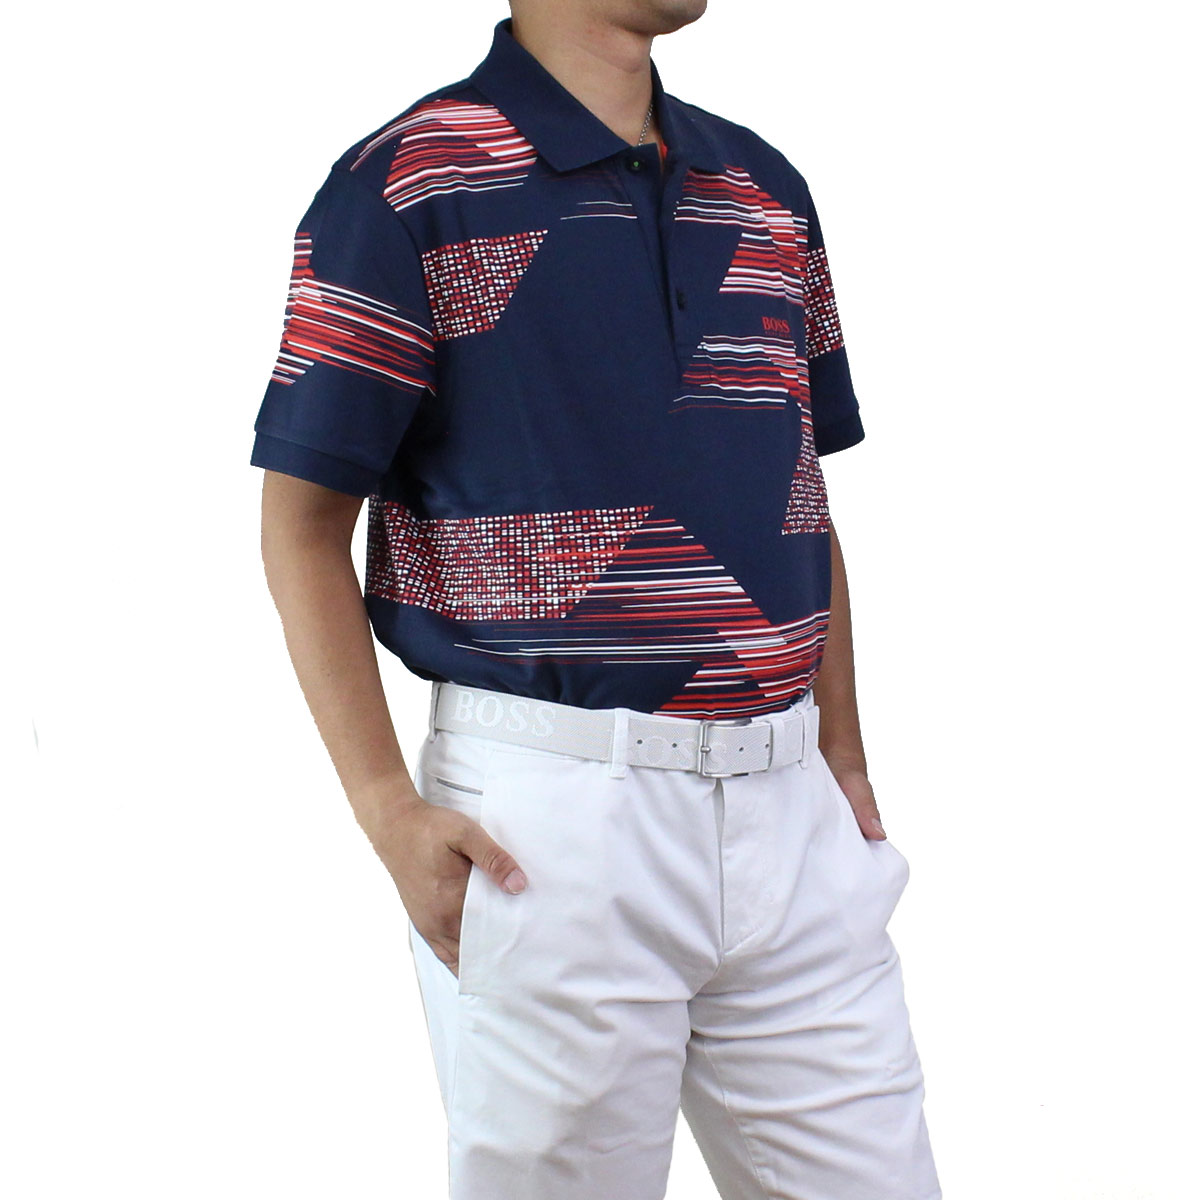 73c36c04 Bighit The total brand wholesale: Men of Hugo Boss HUGO BOSS PAULE 6 poles  6 polo shirt short sleeves golf wear 50406570 10210510 410 navy origin |  Rakuten ...